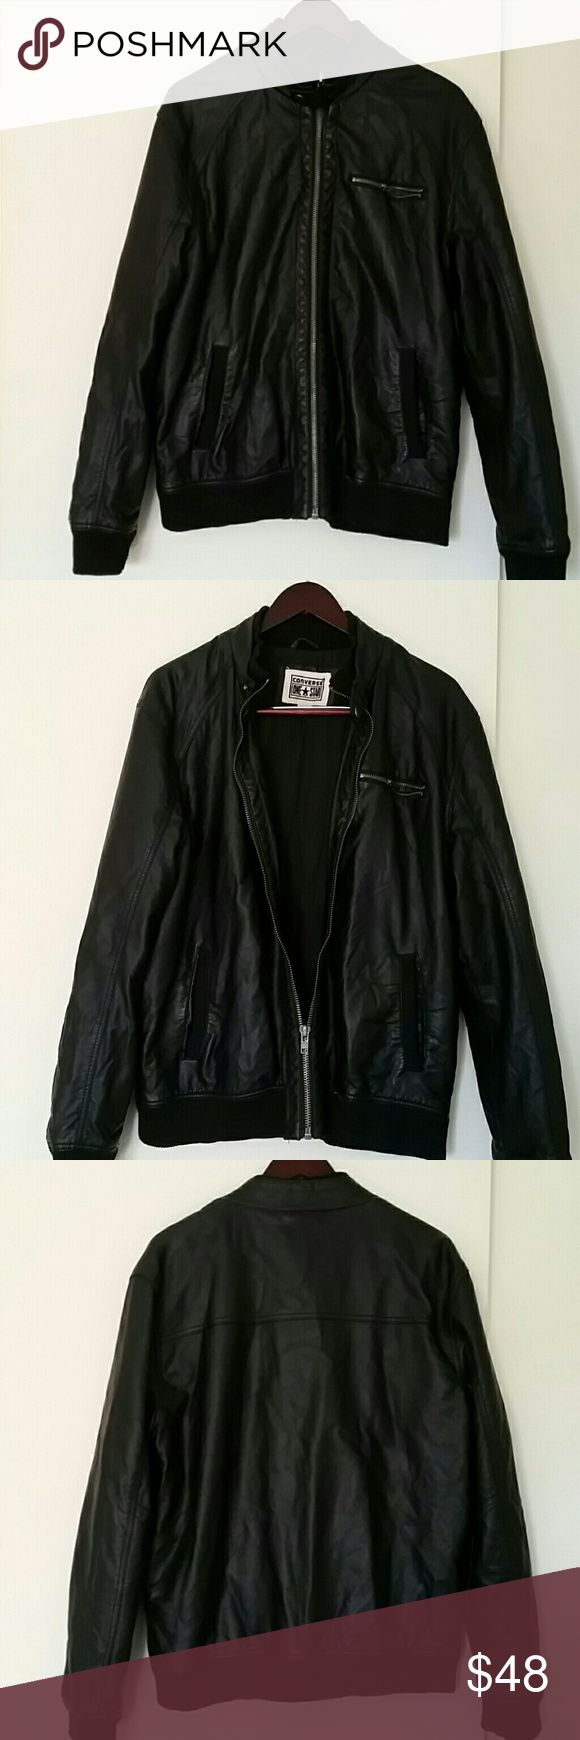 Men's Converse One Star Moto Jacket Men's Converse One Star Moto Jacket  Color: Black Size: Large (true to size) Material: 65% Polyester 35% Cotton  Faux Leather  Still in GREAT USED CONDITION No stains, holes or discoloration Converse Jackets & Coats